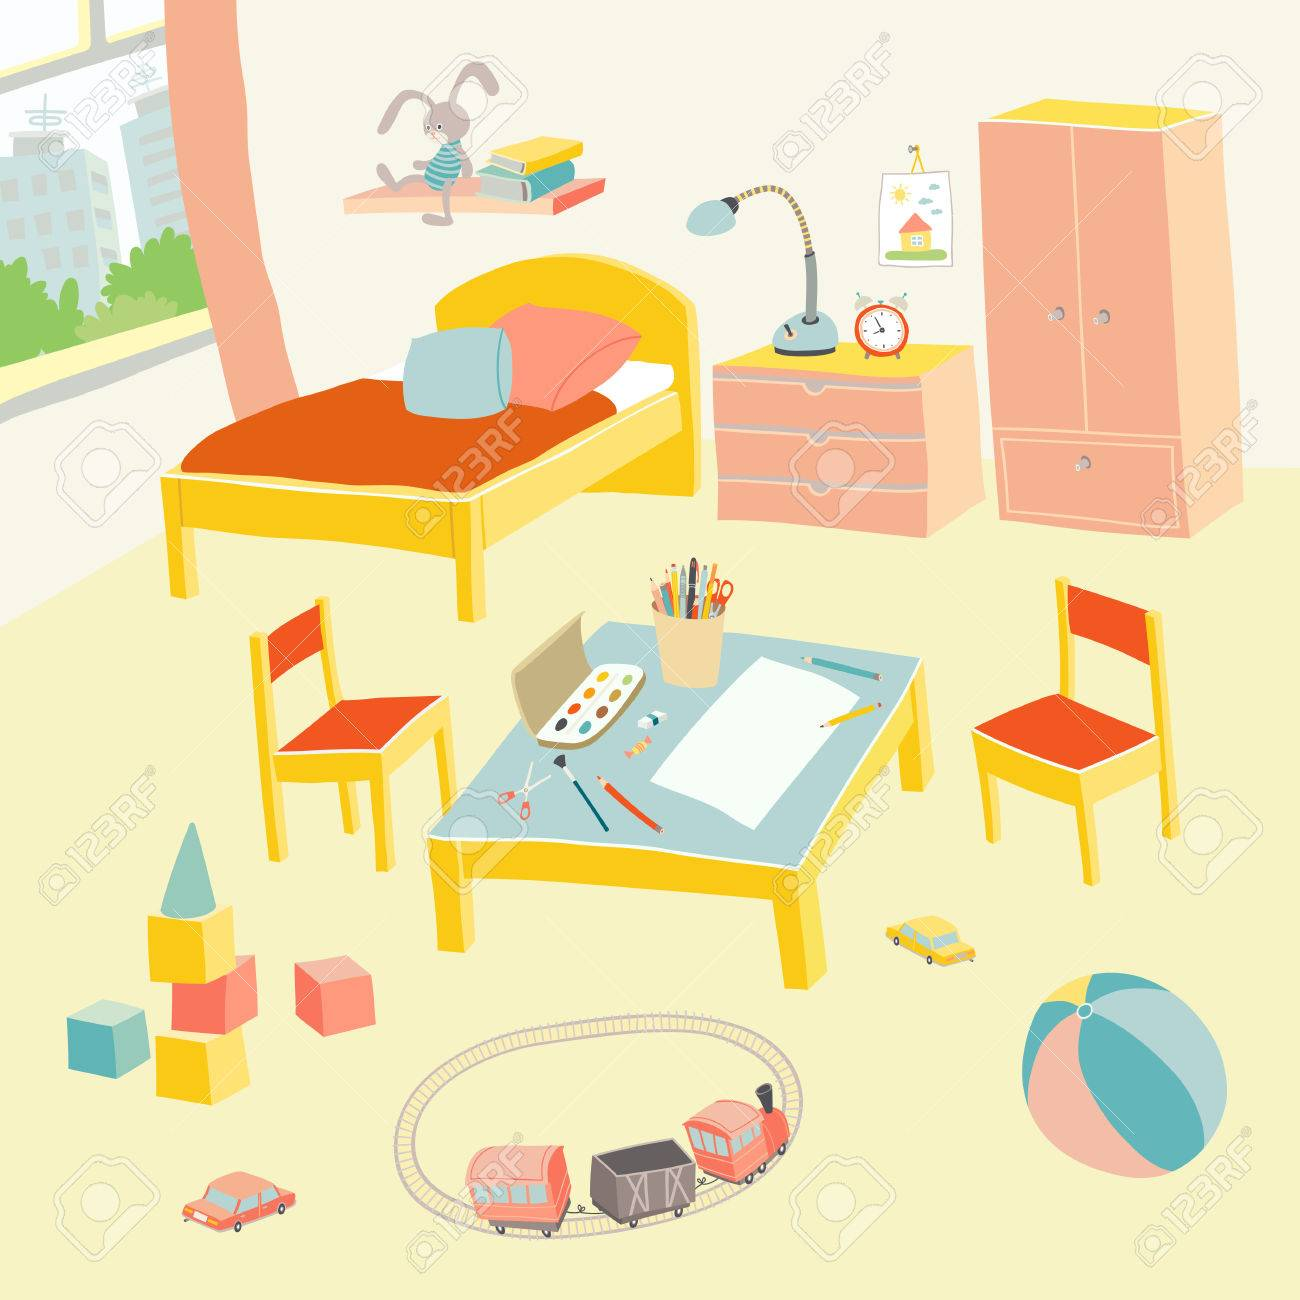 kids play room furniture. Childrens Bedroom Interior With Furniture And Toys. Kids Playroom In Flat Style. Hand Drawn Play Room T